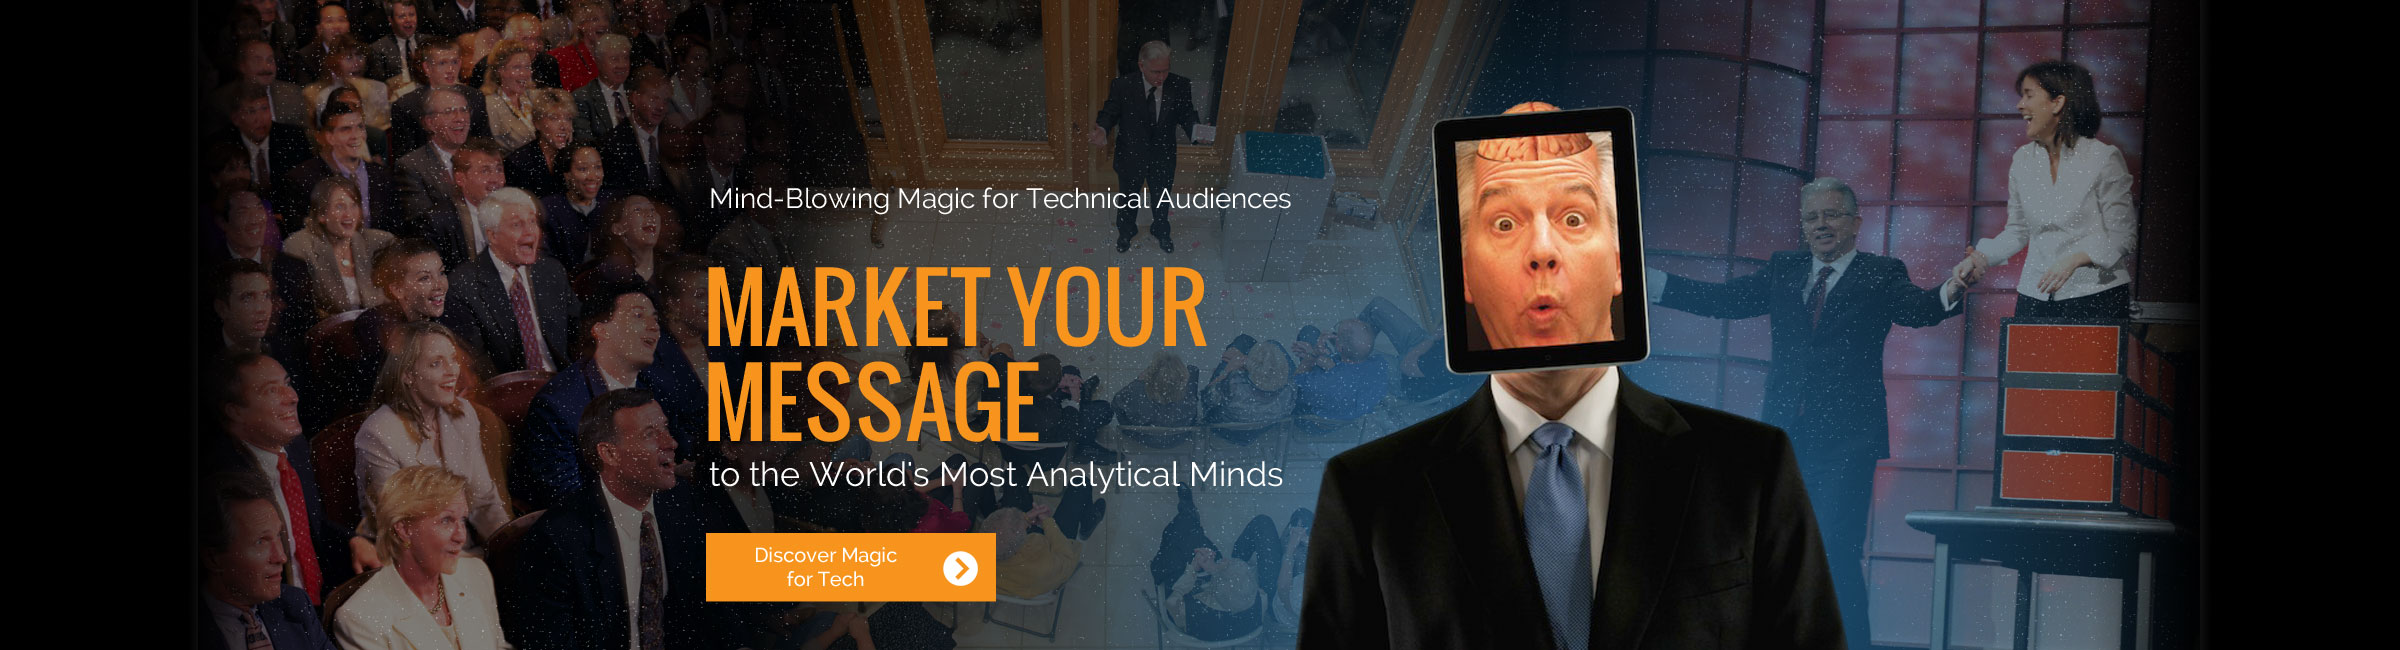 Market your message to the World's Most Analytical Minds